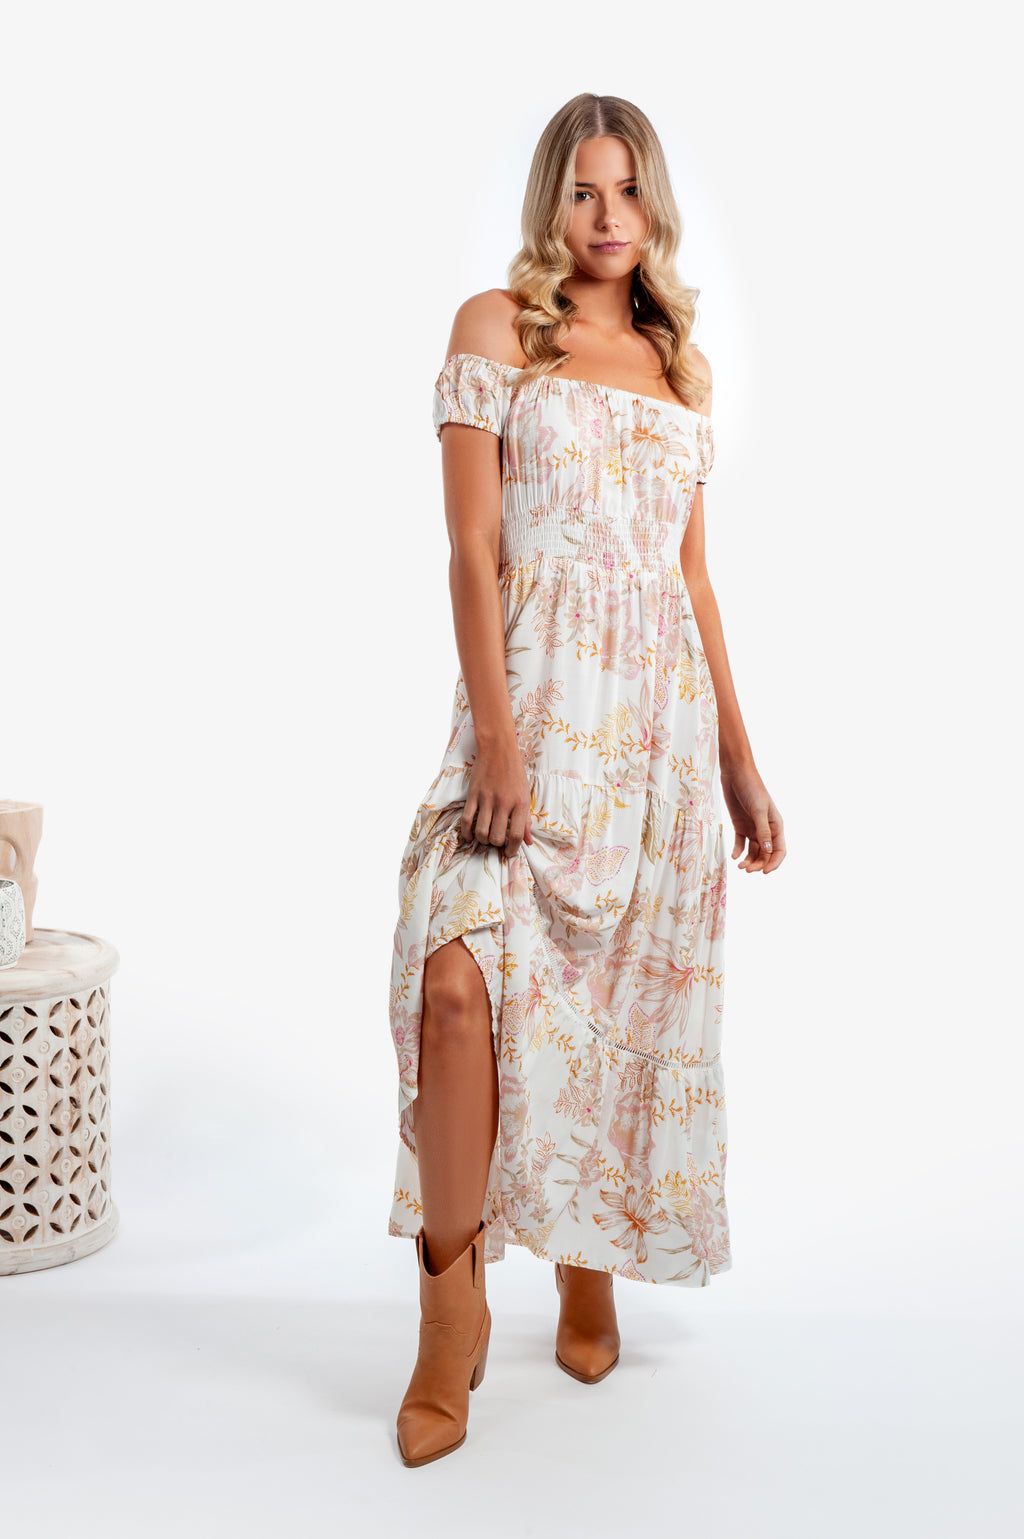 Halluana Dress - Sidney Print - Islandlace